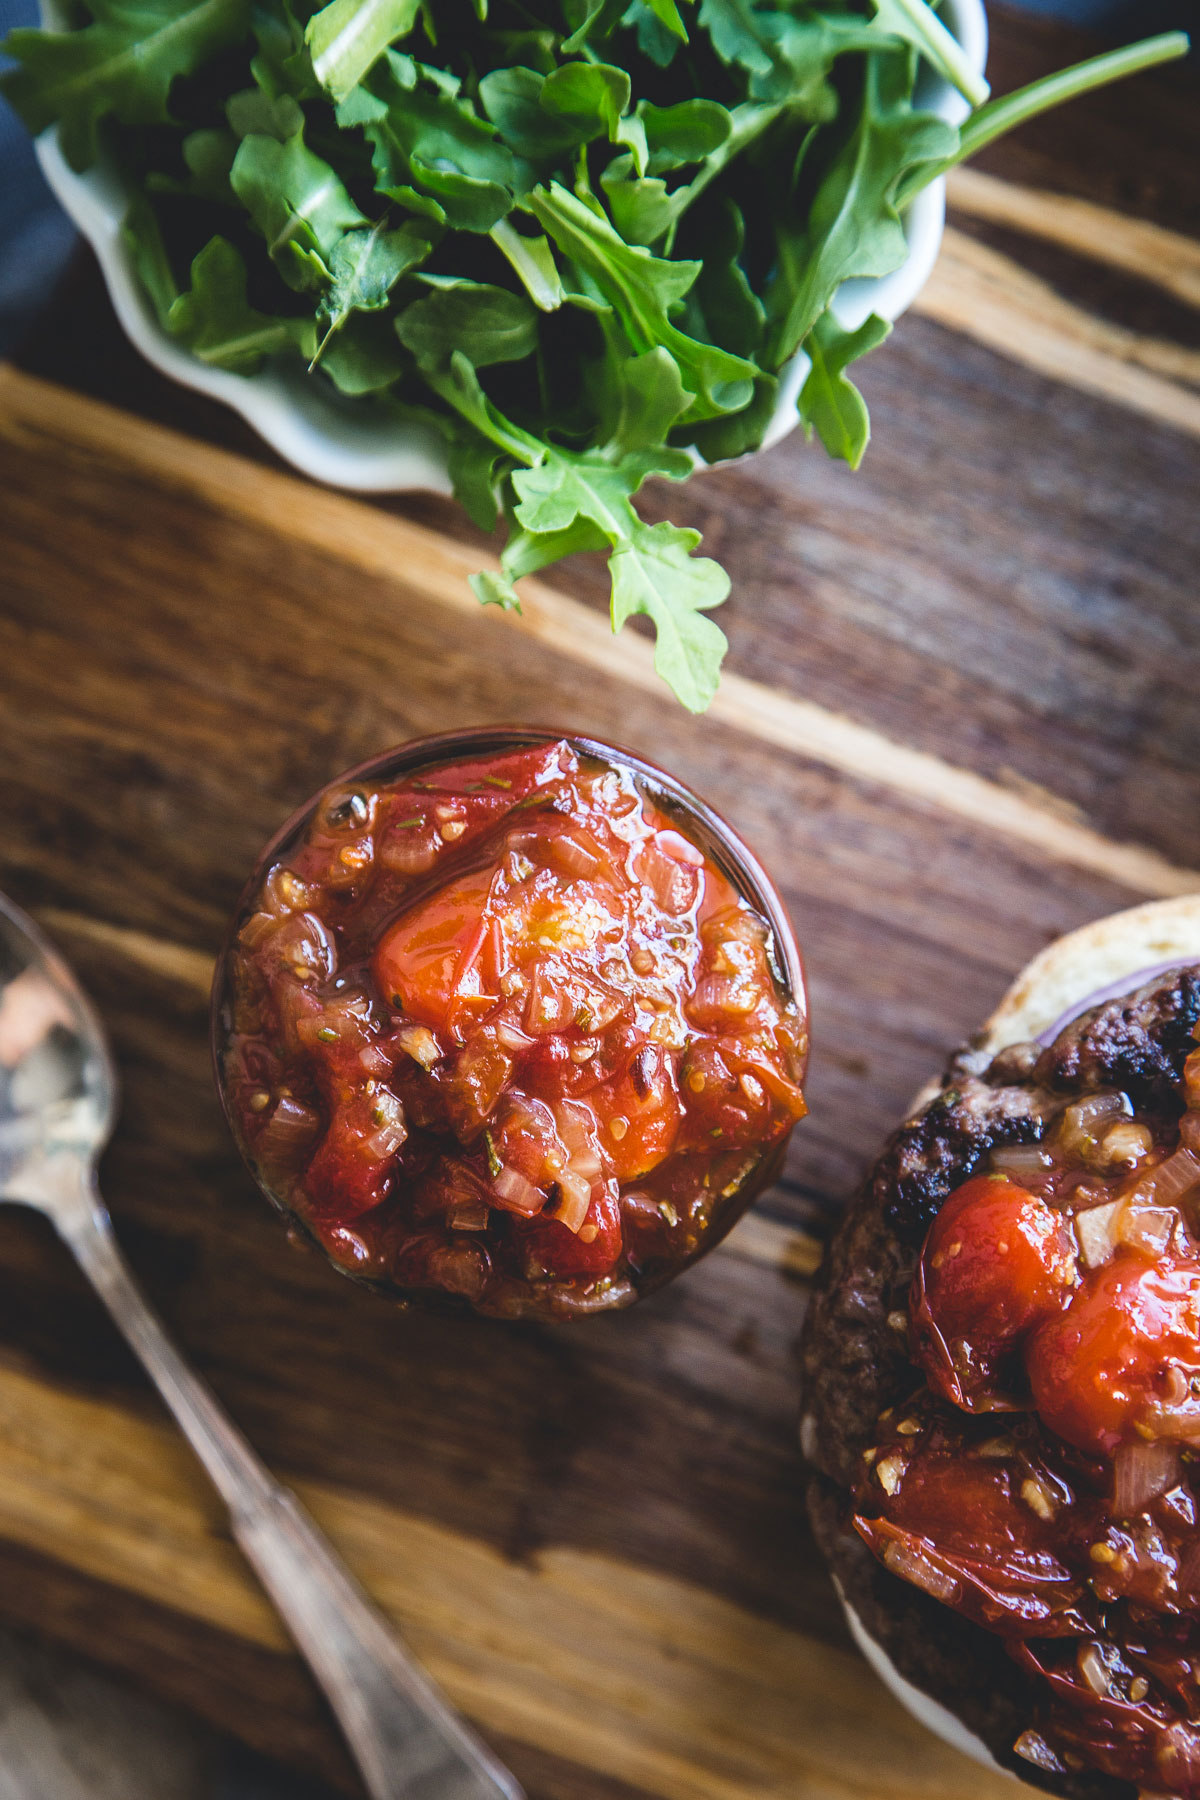 We like to serve this tomato jam as an accompaniment for grilled lamb burgers or salmon. It is also nice for a bruschetta with soft cheese.